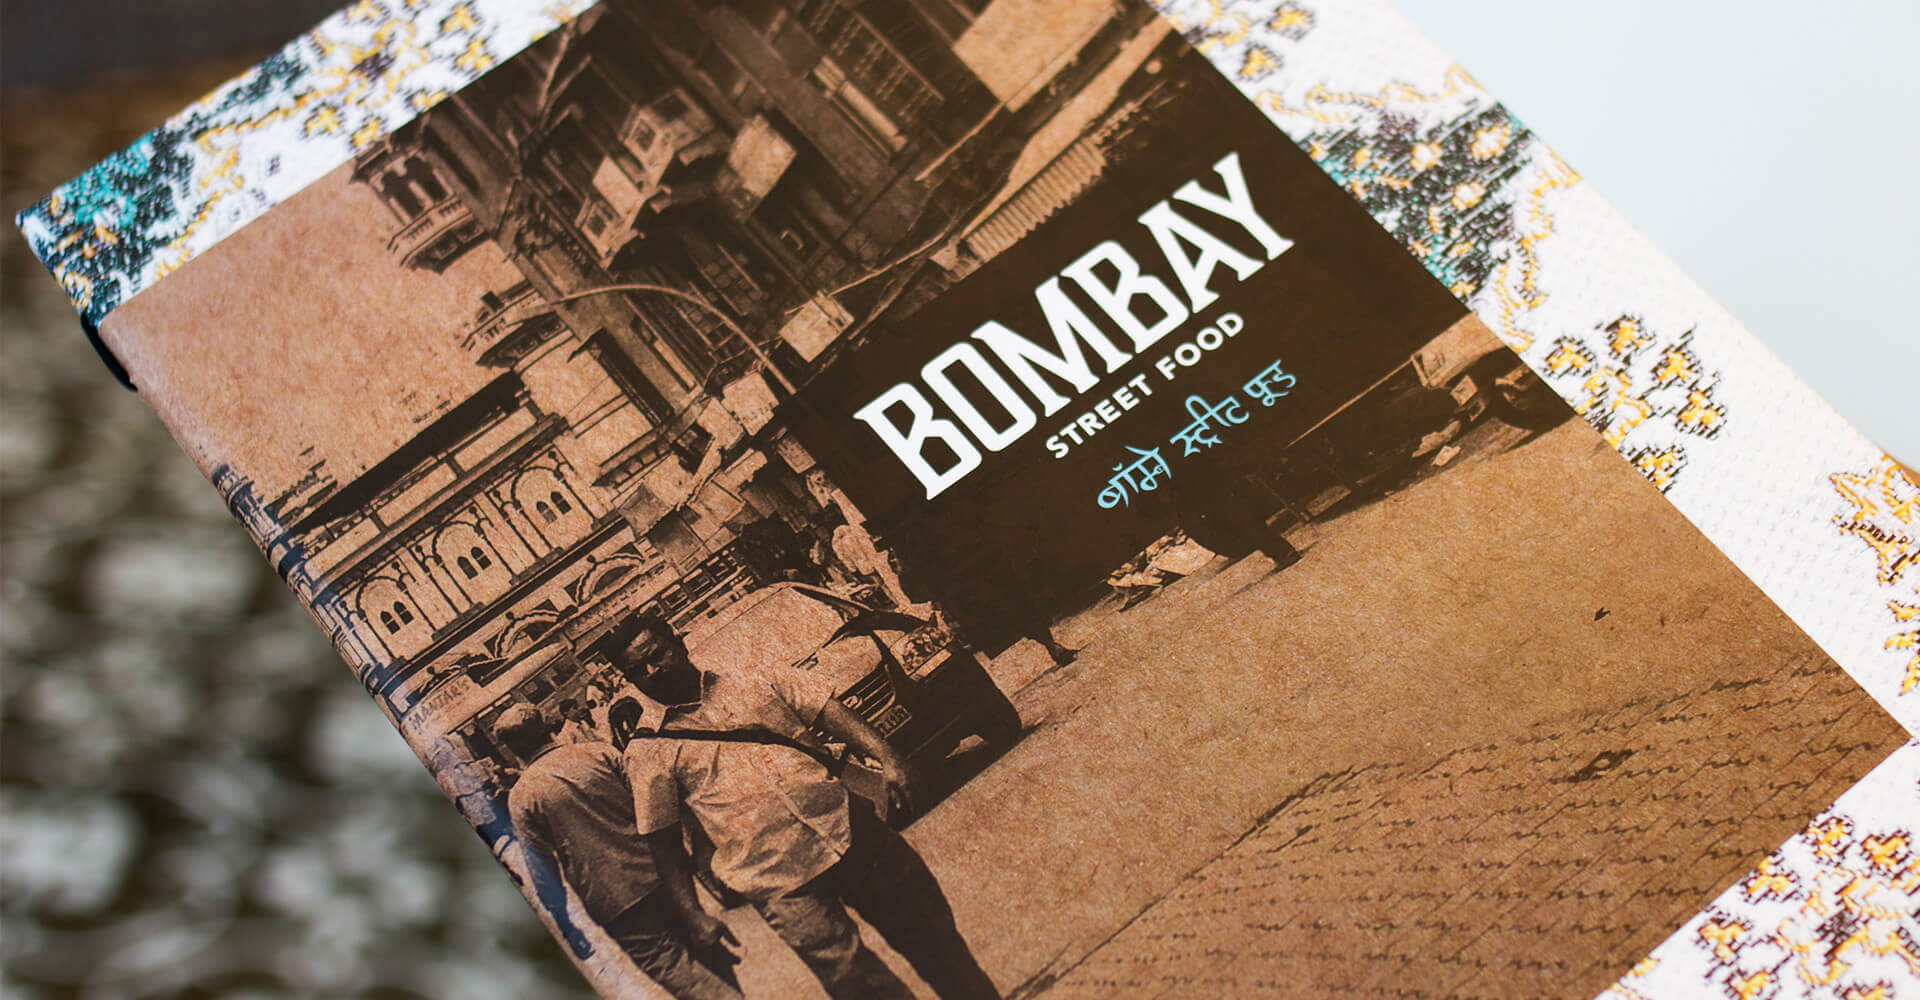 Bombay Street Food